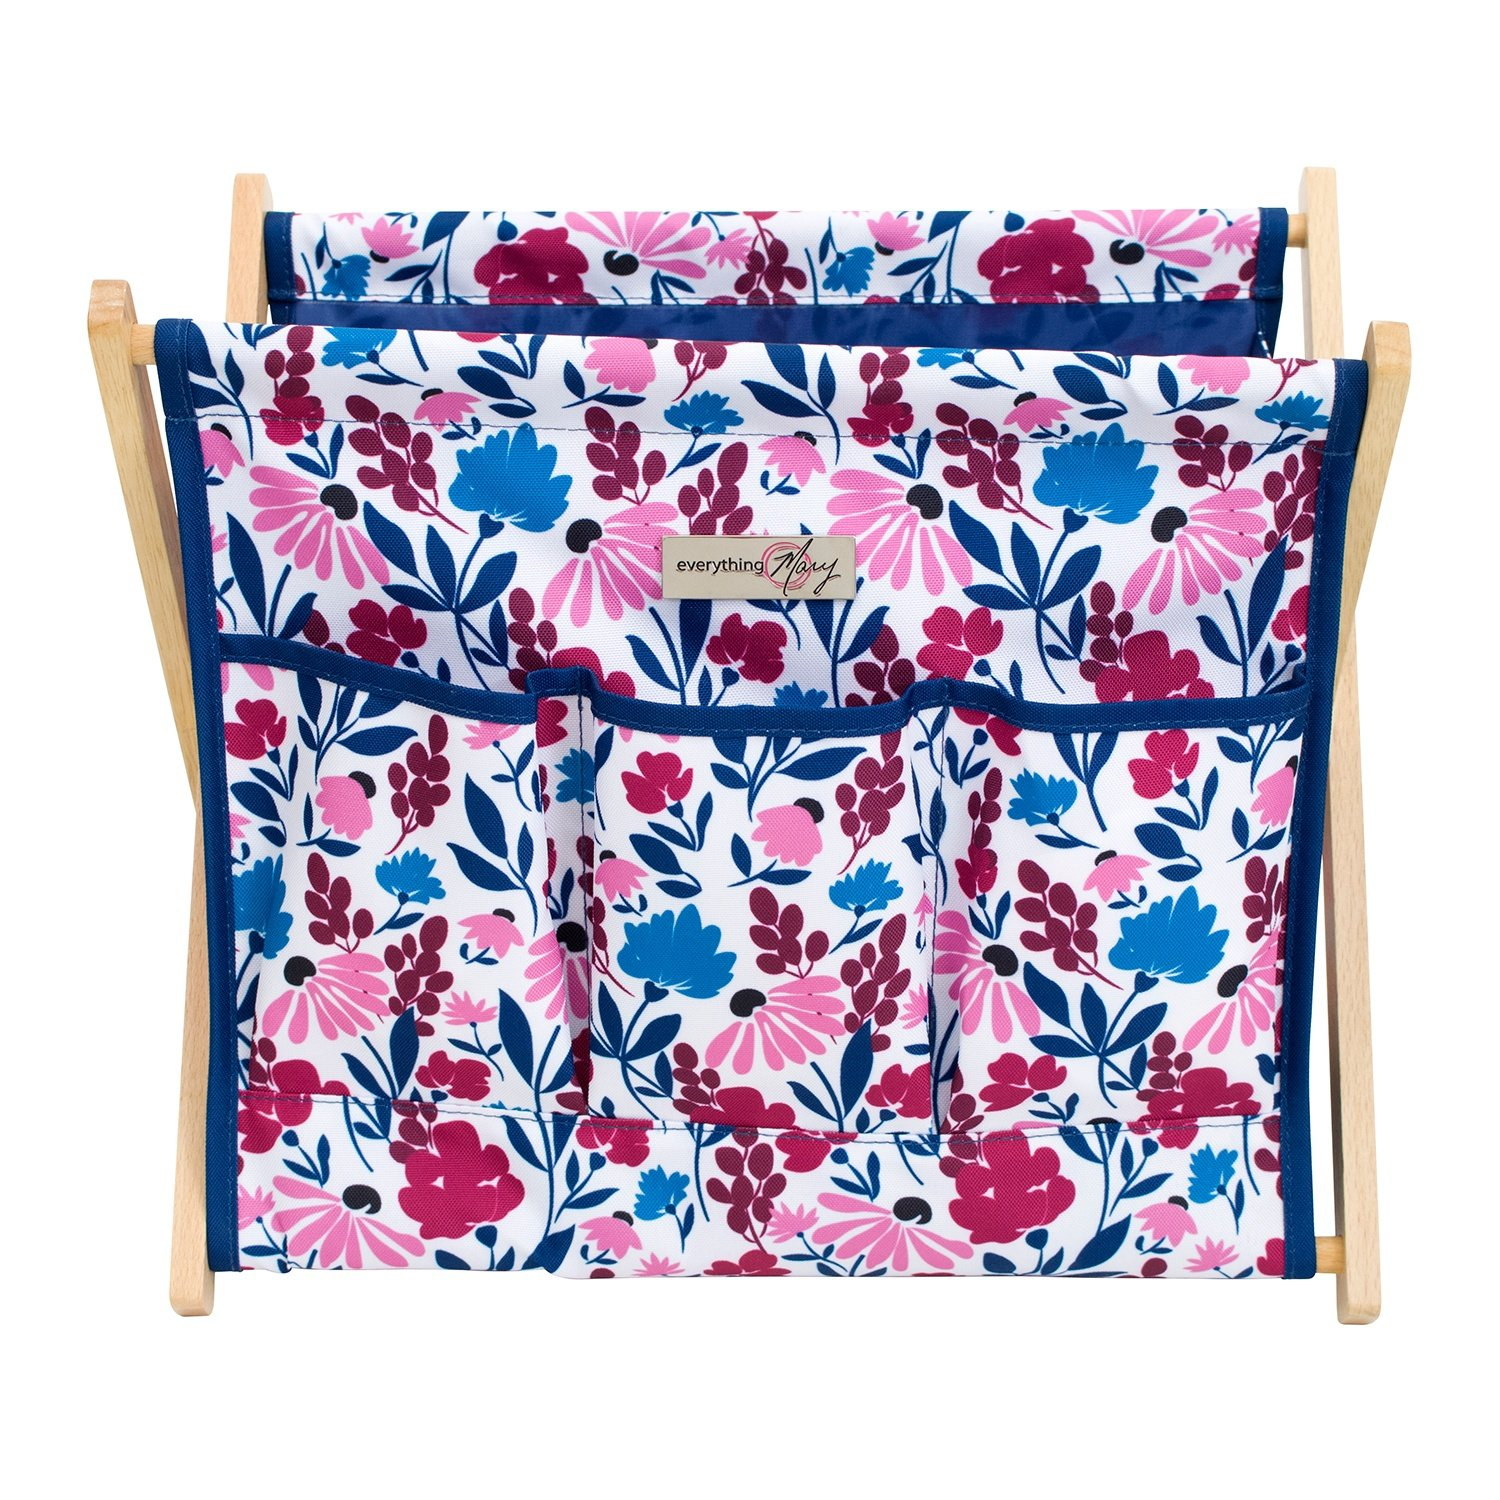 Everything Mary Deluxe Fold-Up Wooden Yarn Arts Caddy - Organization Storage for Knitting, Yarn, Crotchet - Yarn & Notions Organization - Tangle Free Yarn Caddy Bag Organizer for Tools & Travel by Everything Mary (Image #2)